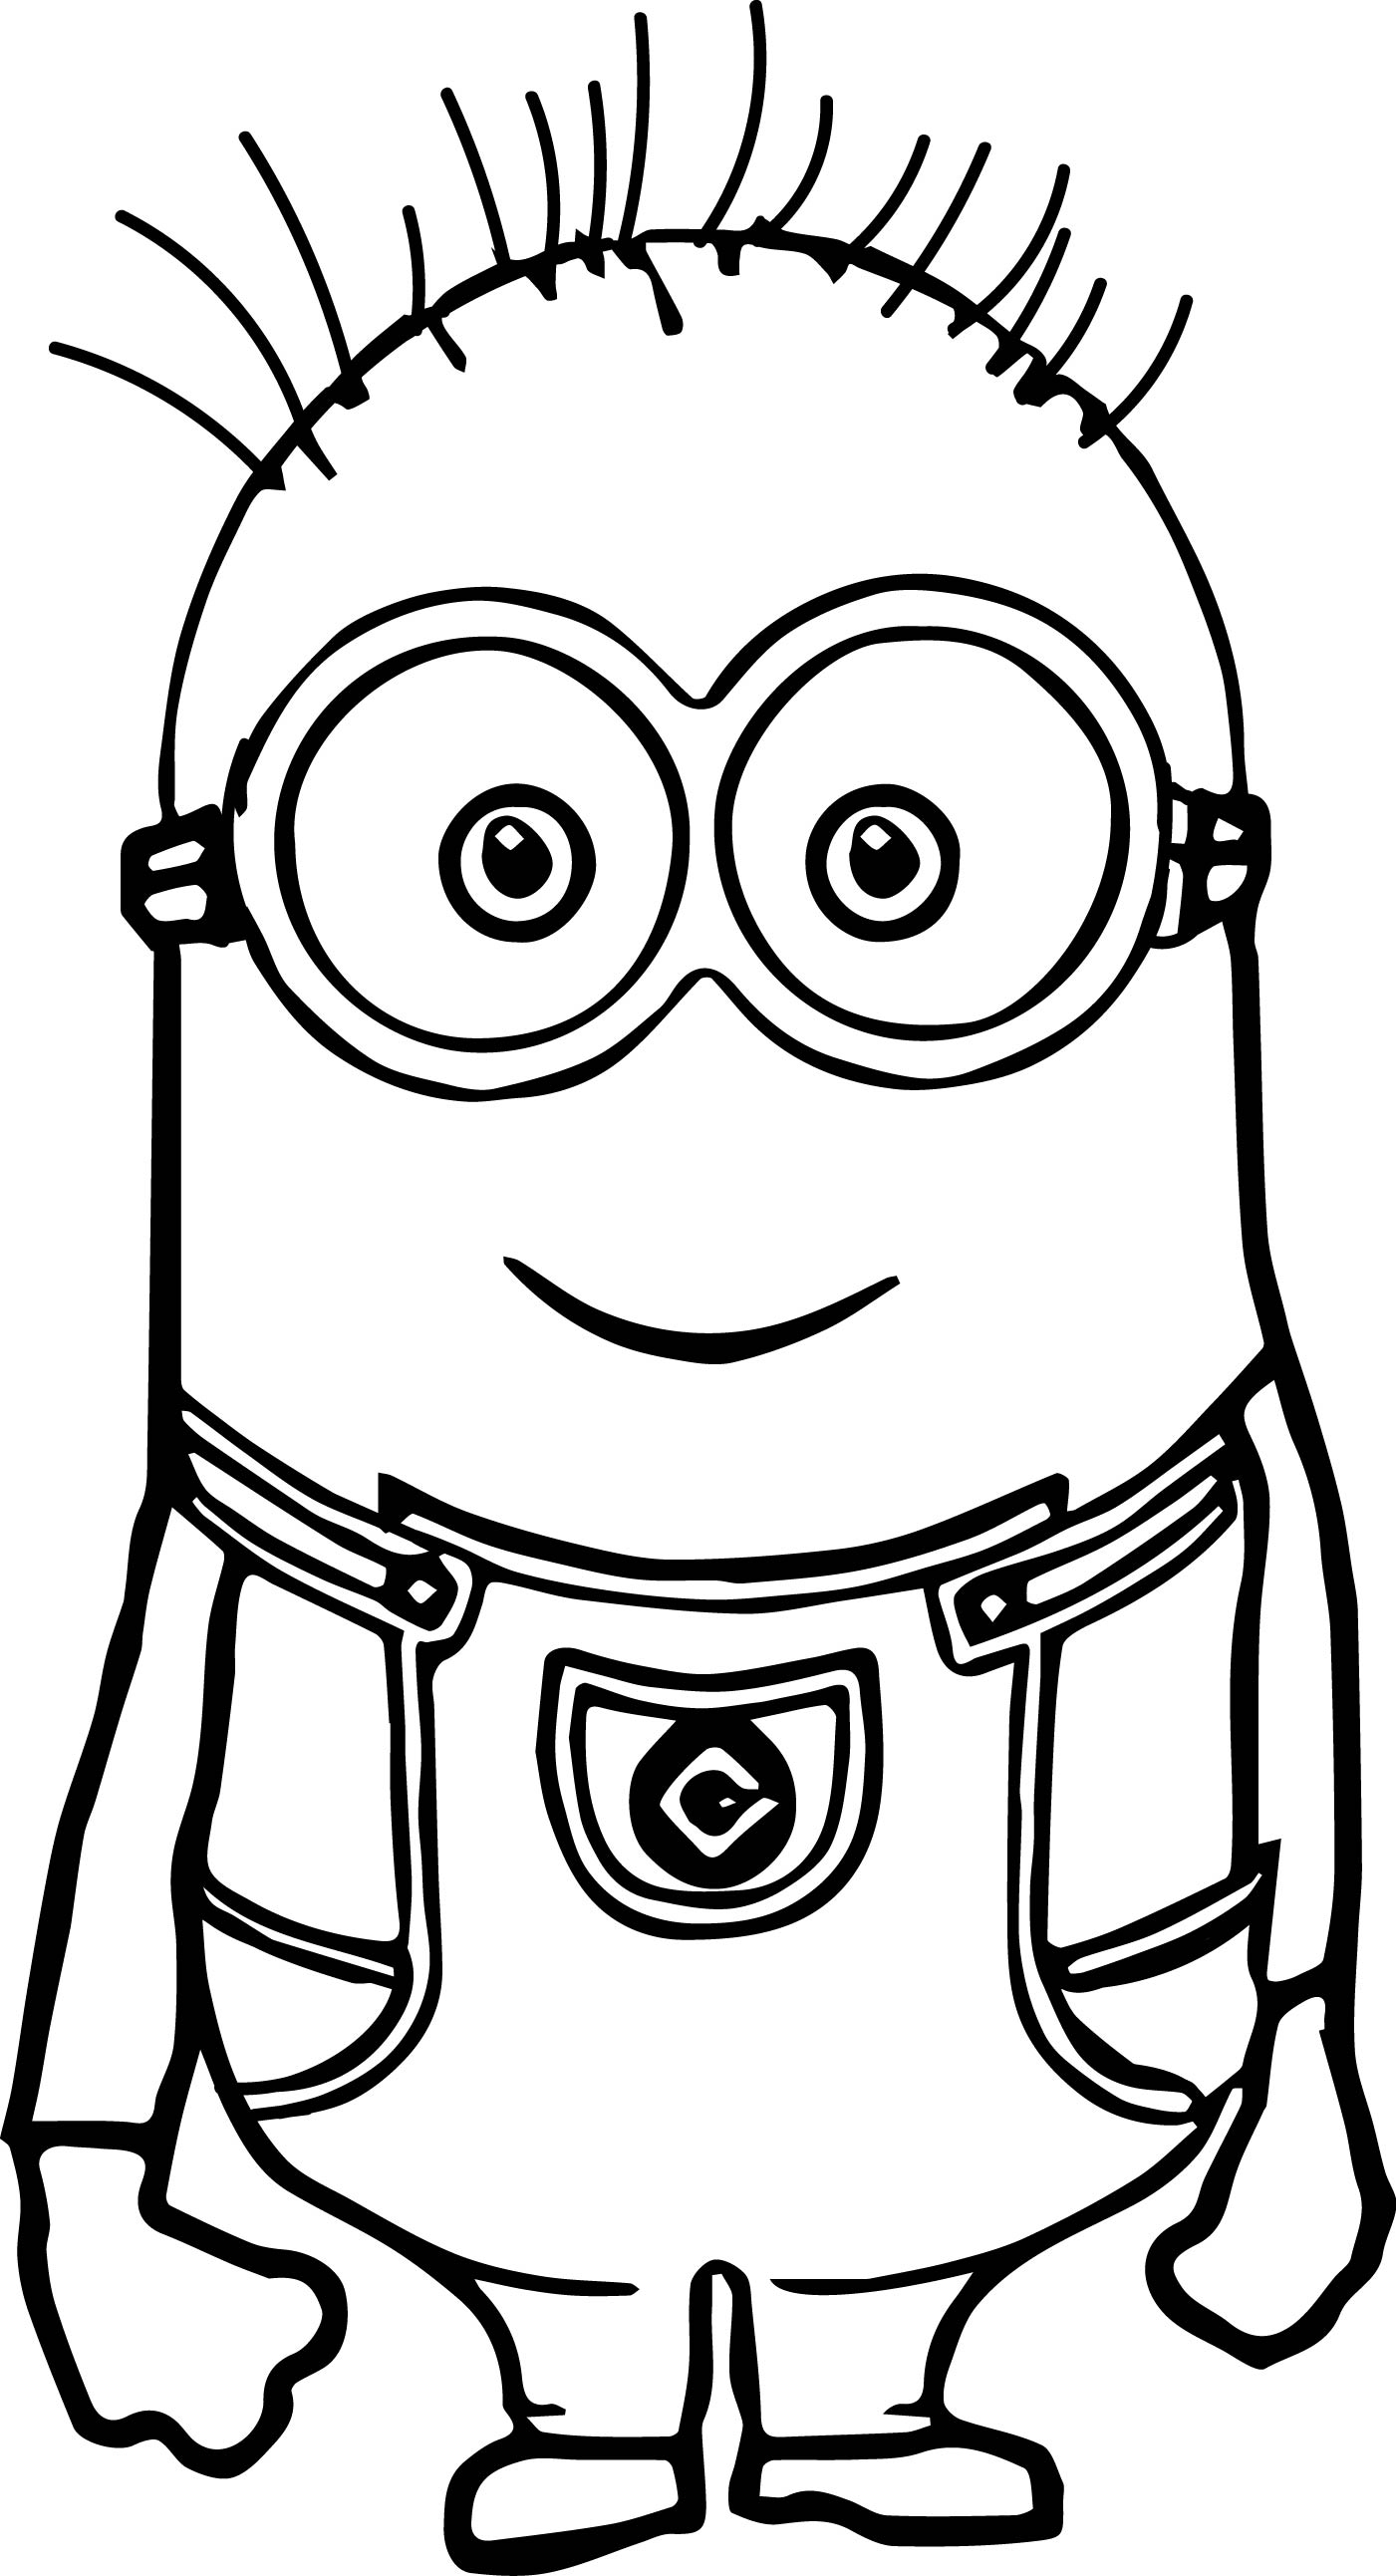 1401x2585 Cute Basic Minion Coloring Page Wecoloringpage